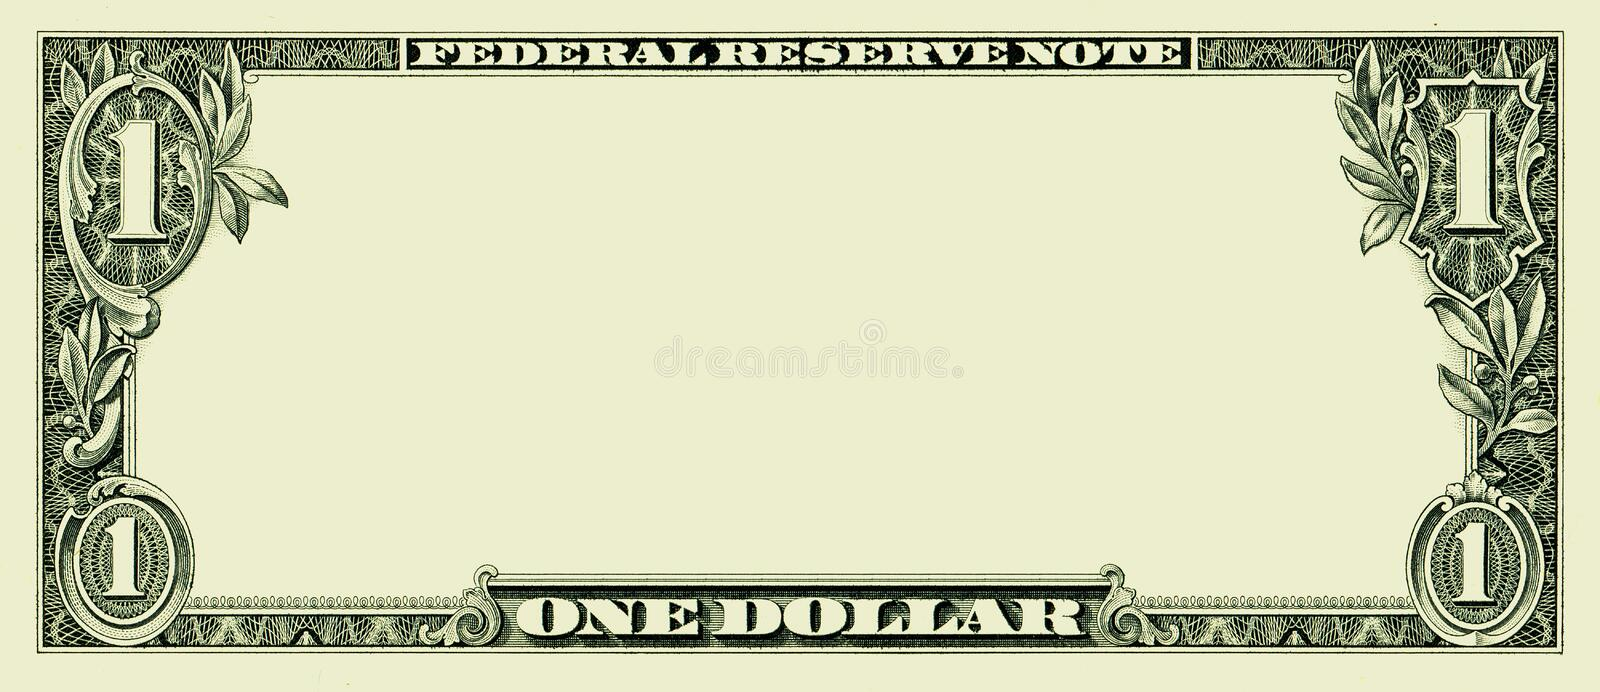 Blank one dollar bill. Clear 1 dollar banknote pattern for design purposes